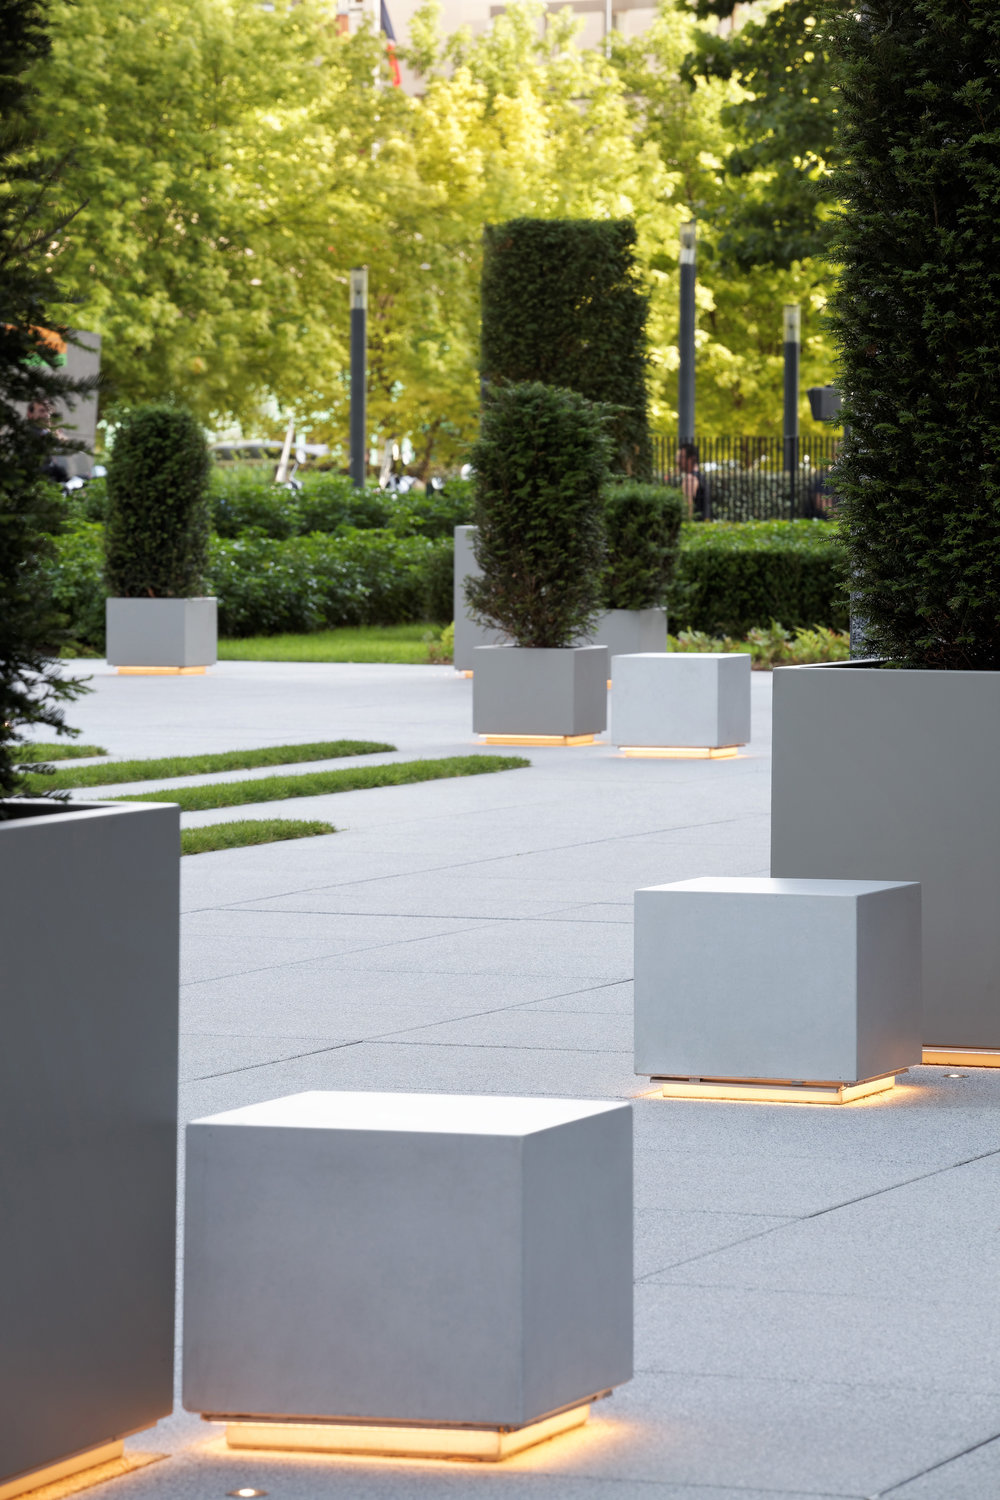 europlaza_tower_paris_la_defense_terraces_gardens_christophe_gautrand_landscape_outdoor_designer_6.jpg